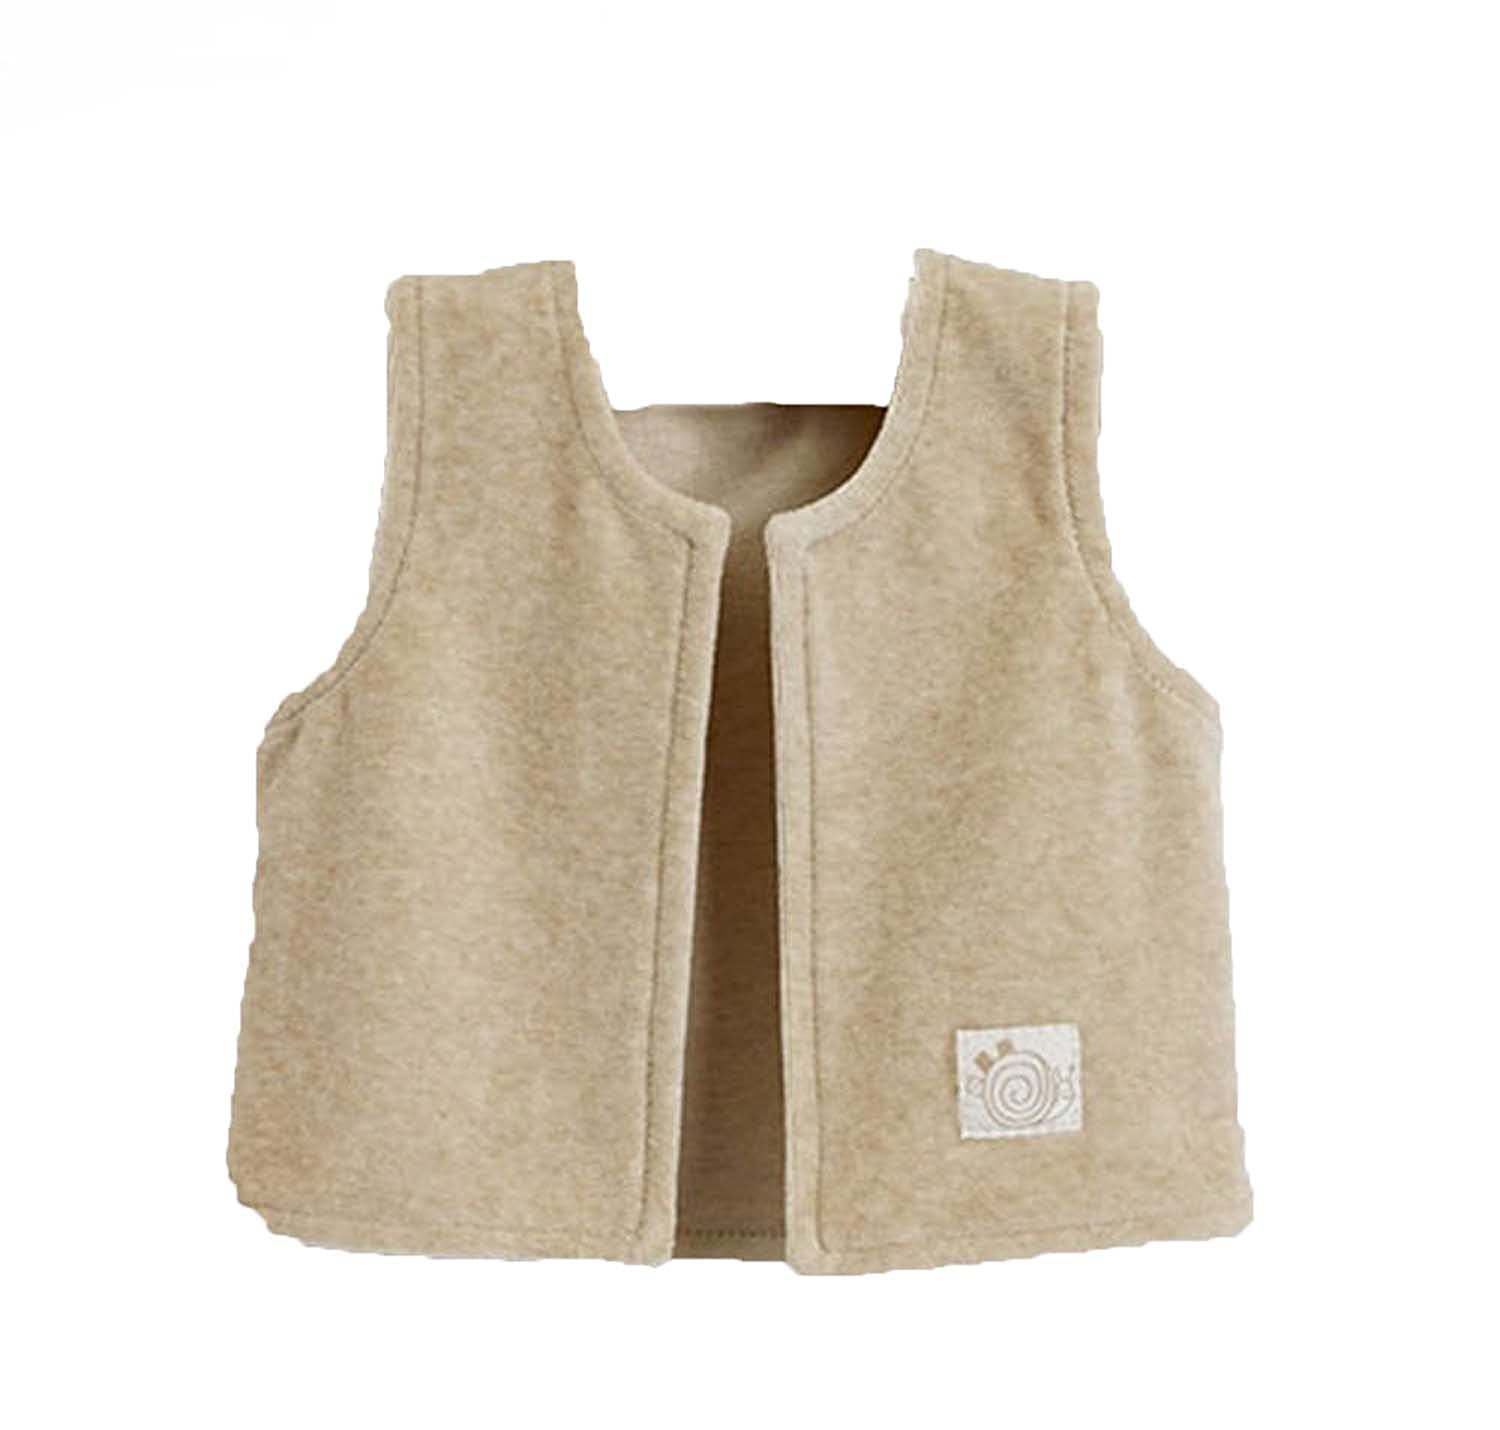 Natures Purest Spots & Stripe Gilet in Gift Bag 0-3 Months